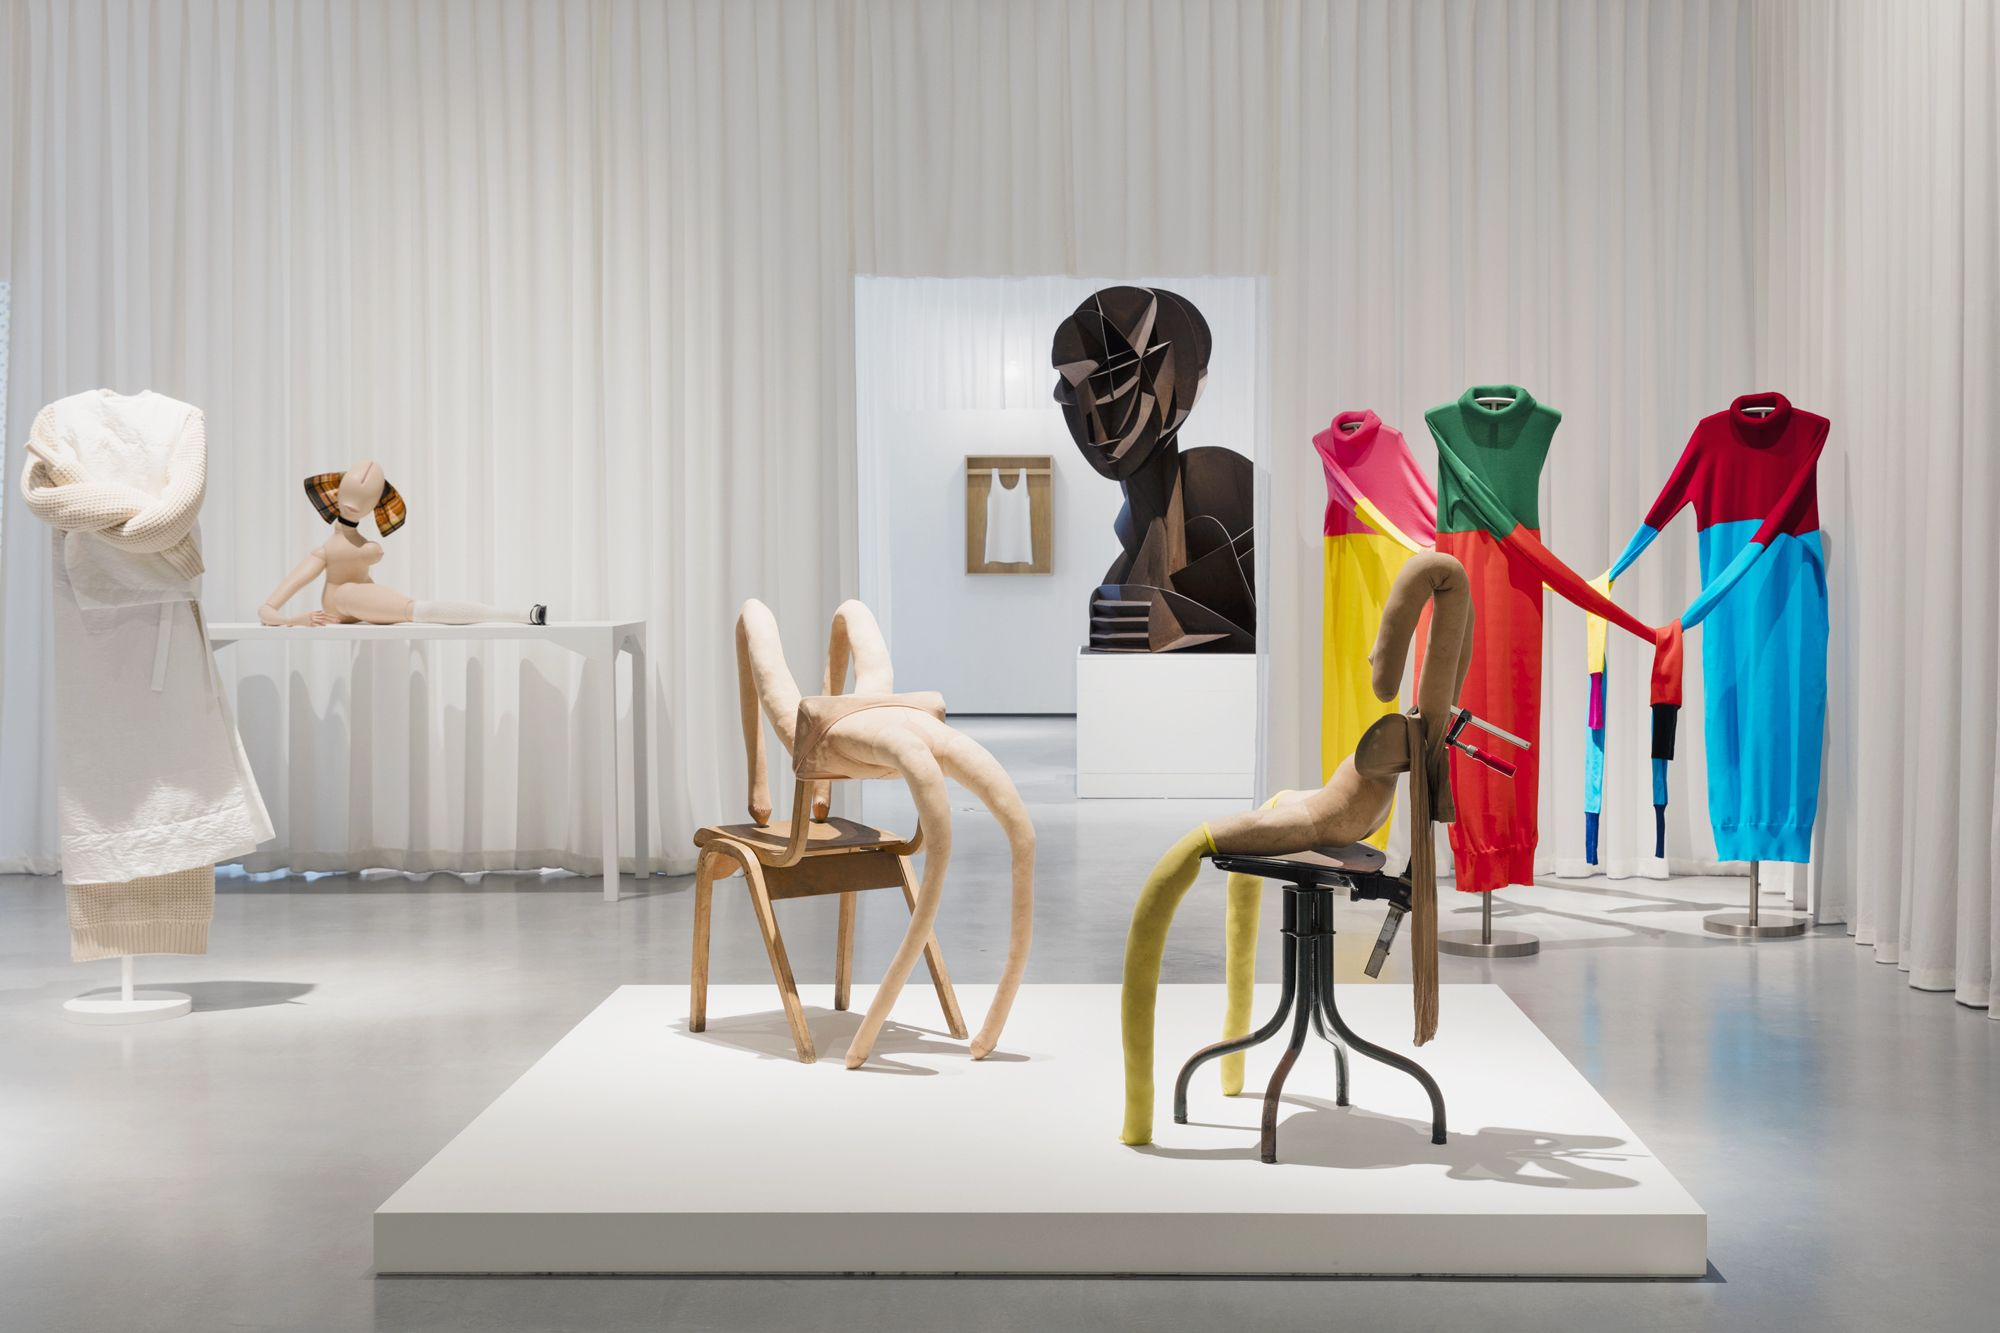 Disobedient Bodies: JW Anderson at The Hepworth Wakefield